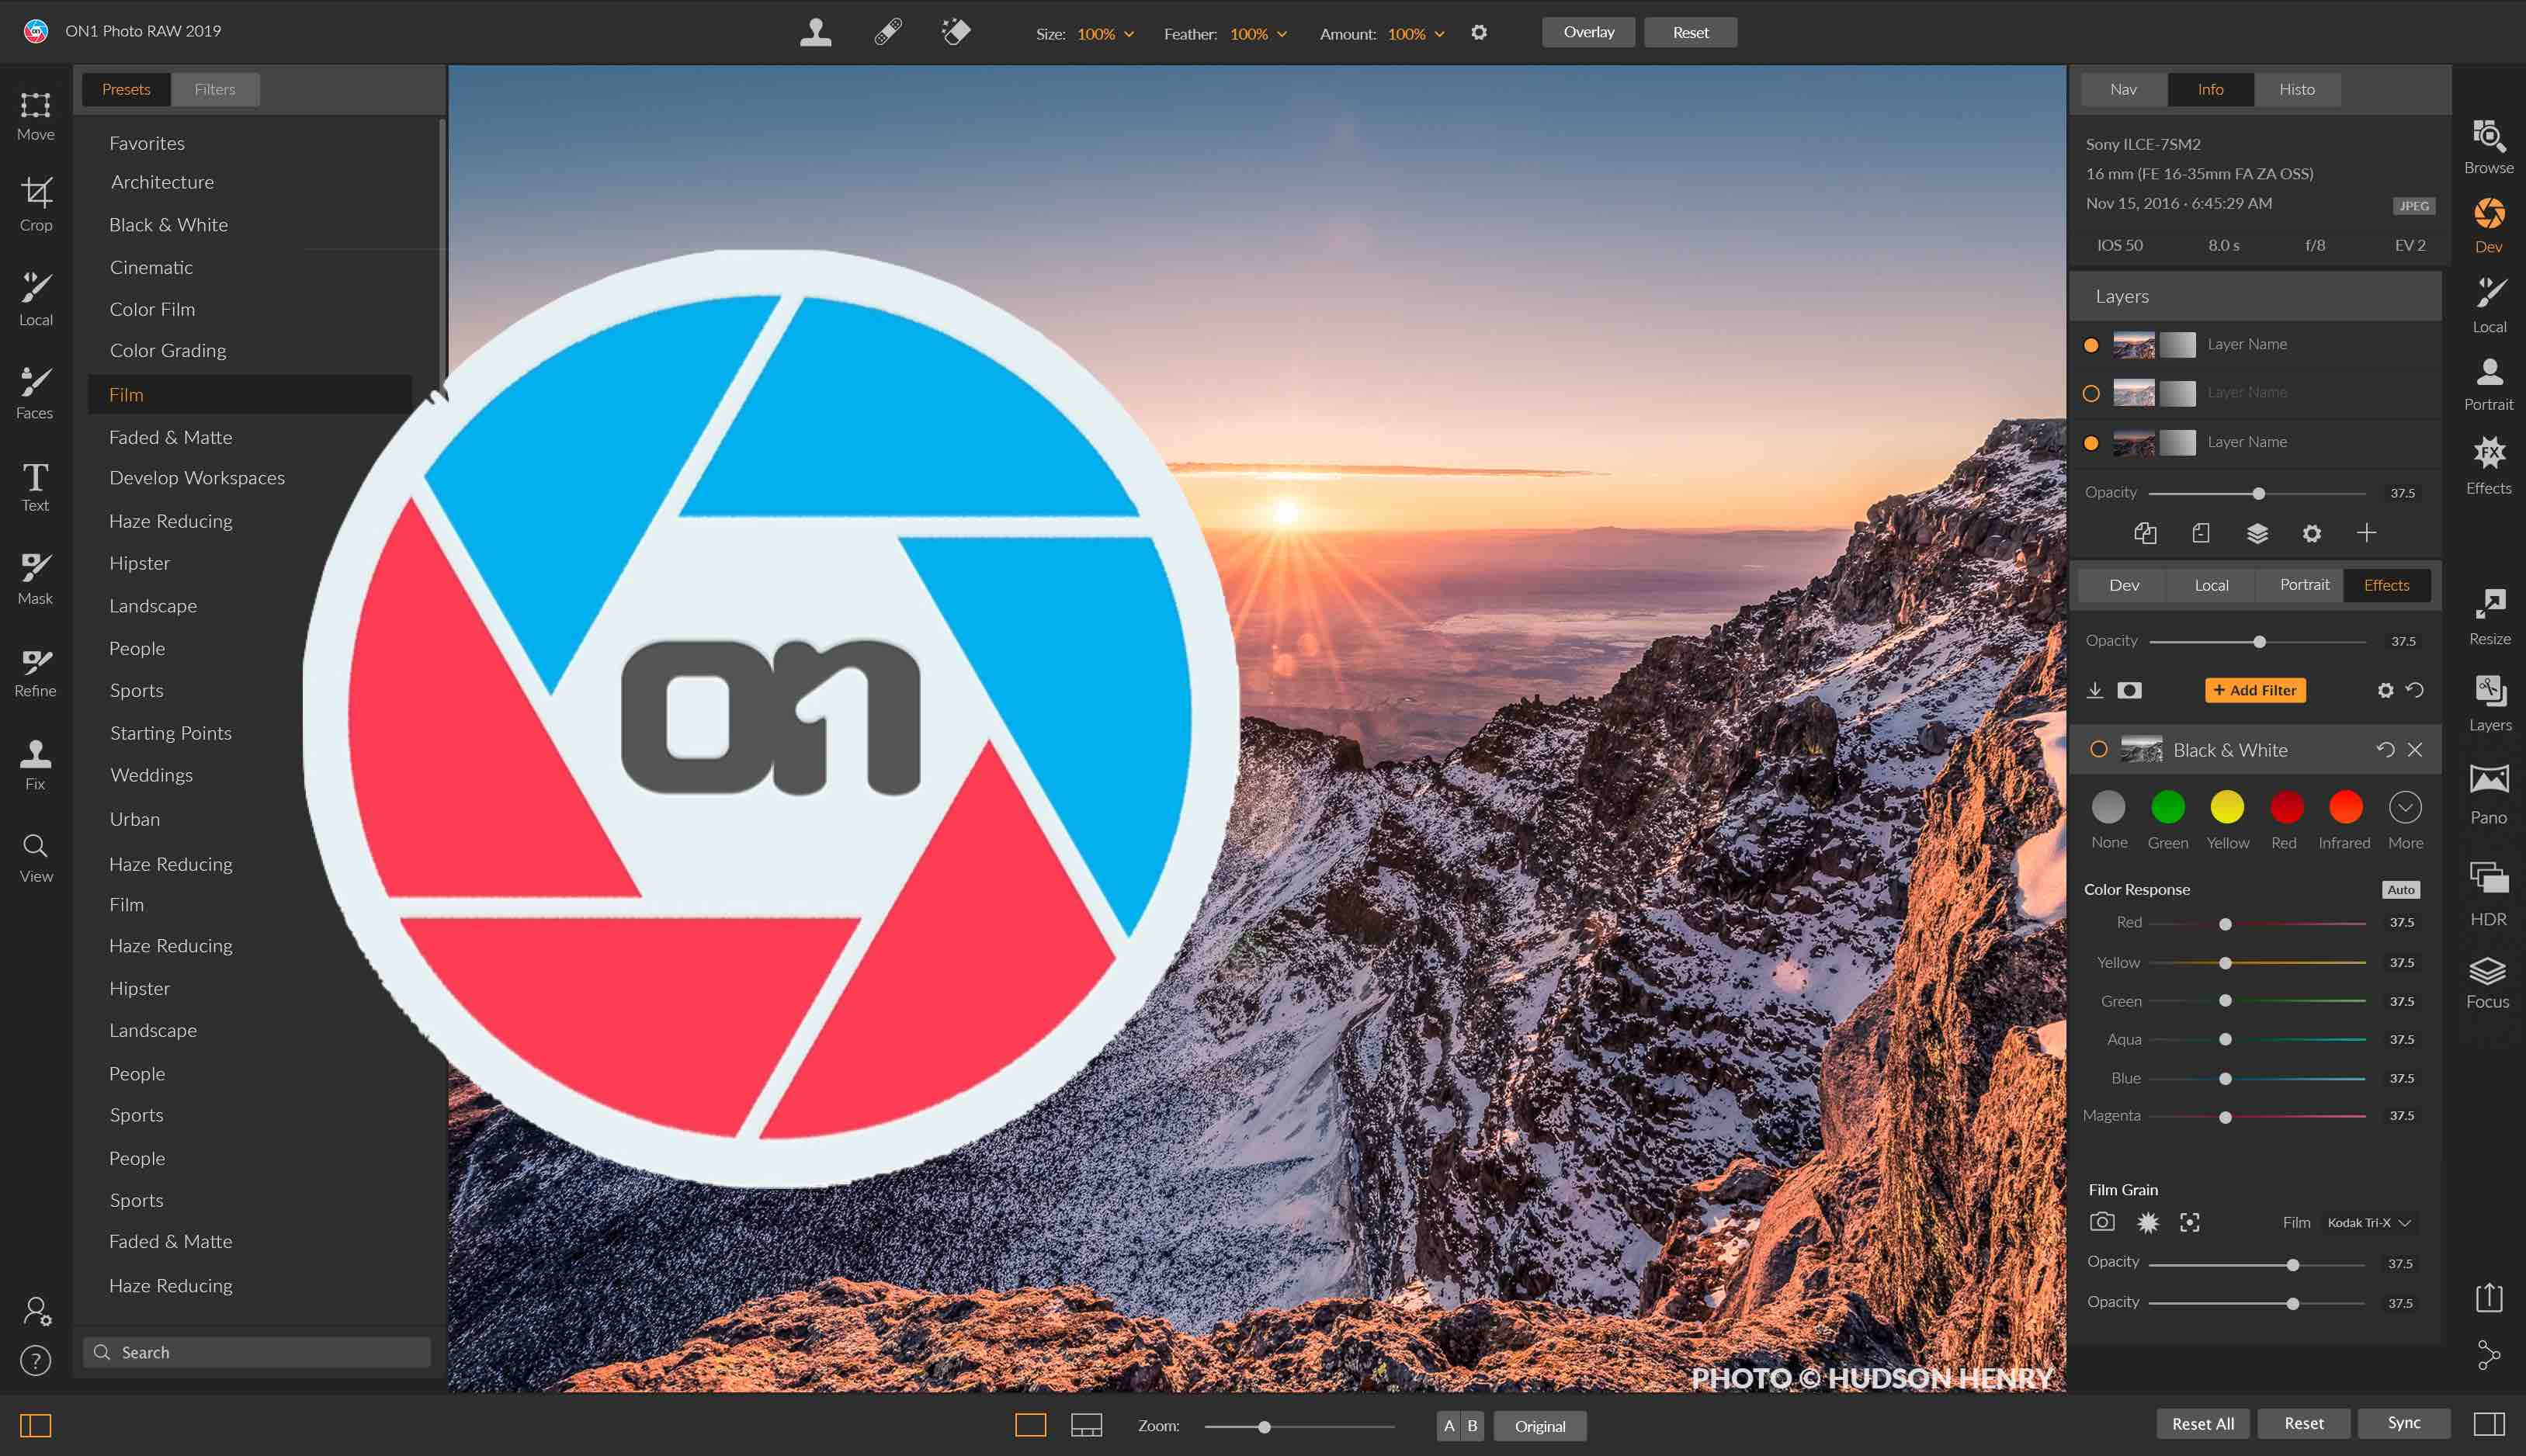 Leaving Lightroom Part 2: ON1 Photo RAW 2019 with Complete Lightroom